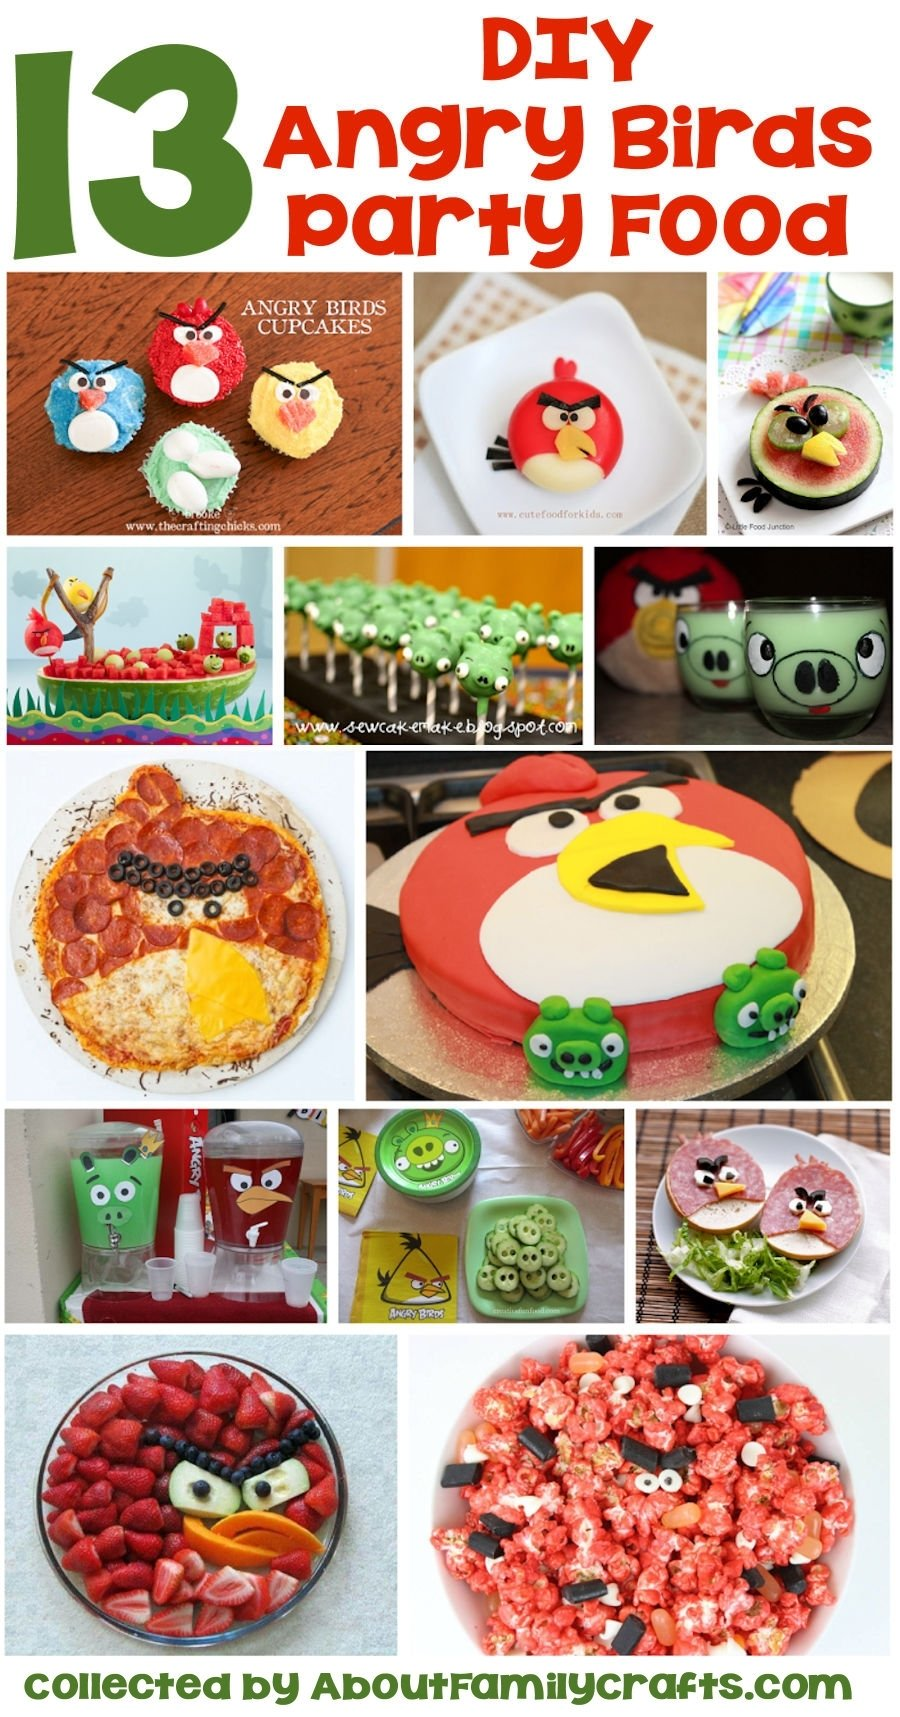 10 Famous Angry Bird Birthday Party Ideas 65 diy angry birds party ideas about family crafts 2 2020